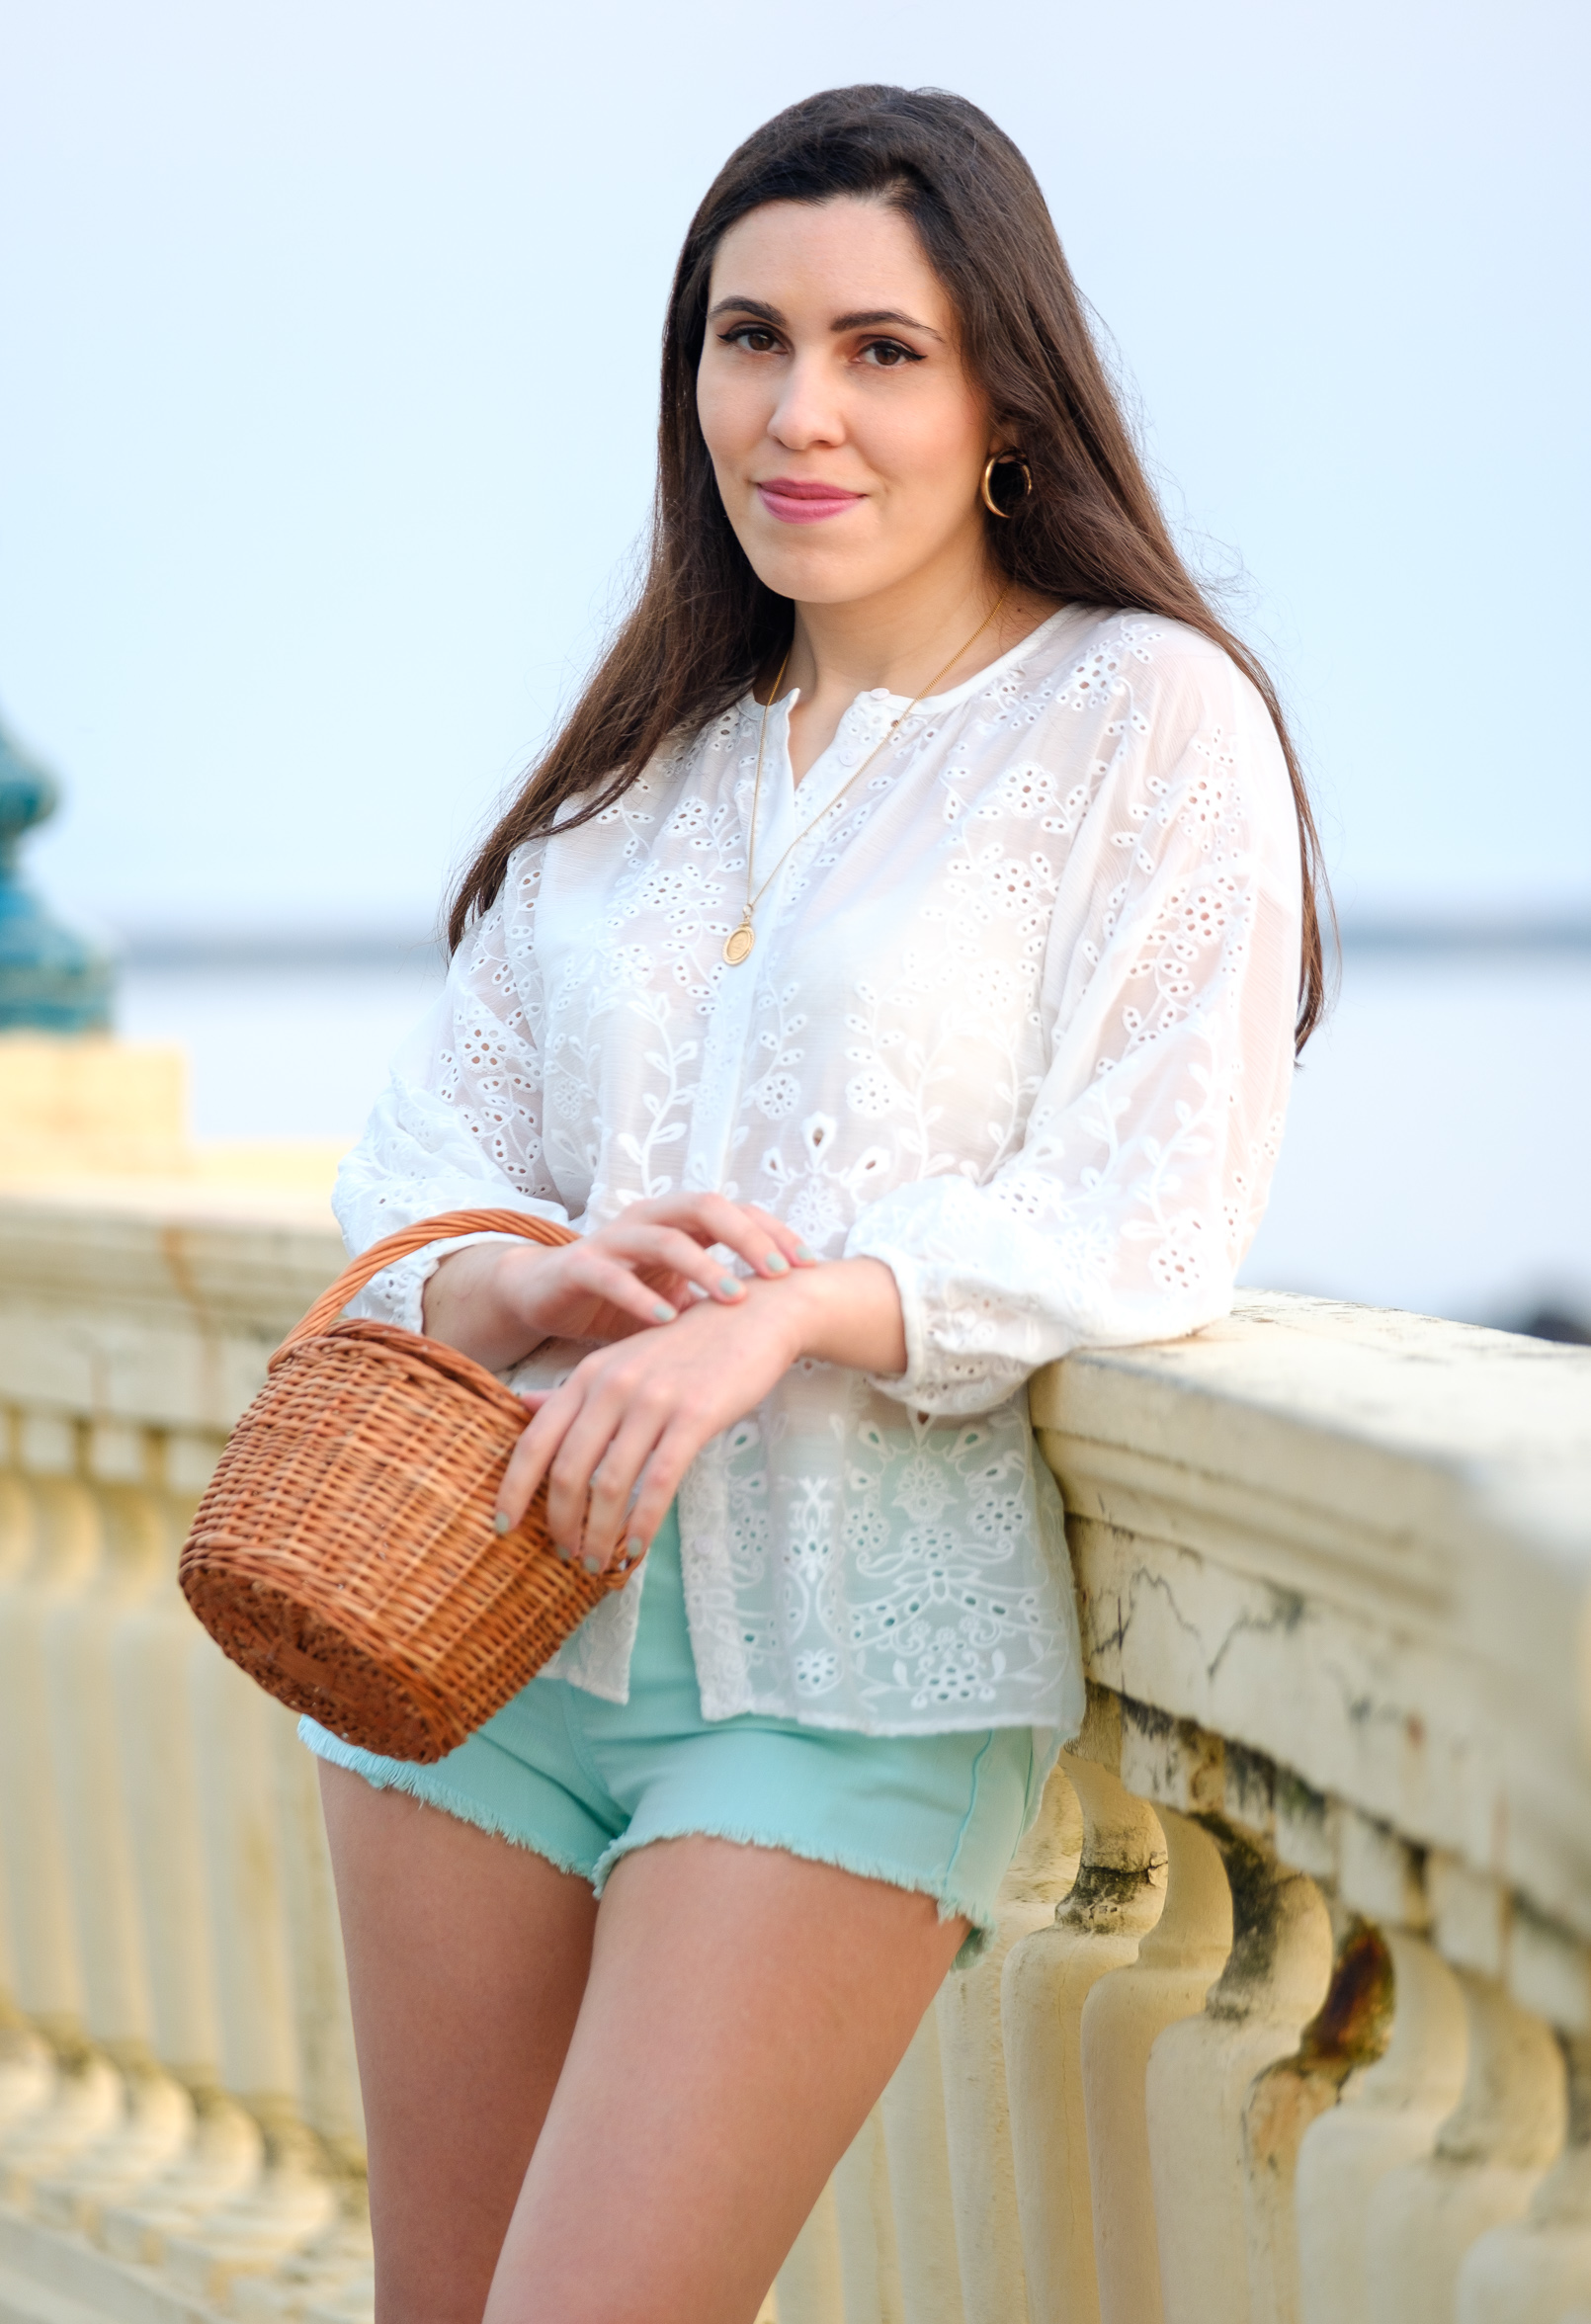 Le Fashionaire blogger catarine martins white english embroidered zara shirt mint denim bershka shorts gold necklace la petite sardine straw bag 2072 EN blogger catarine martins white english embroidered zara shirt mint denim bershka shorts gold necklace la petite sardine straw bag 2072 EN